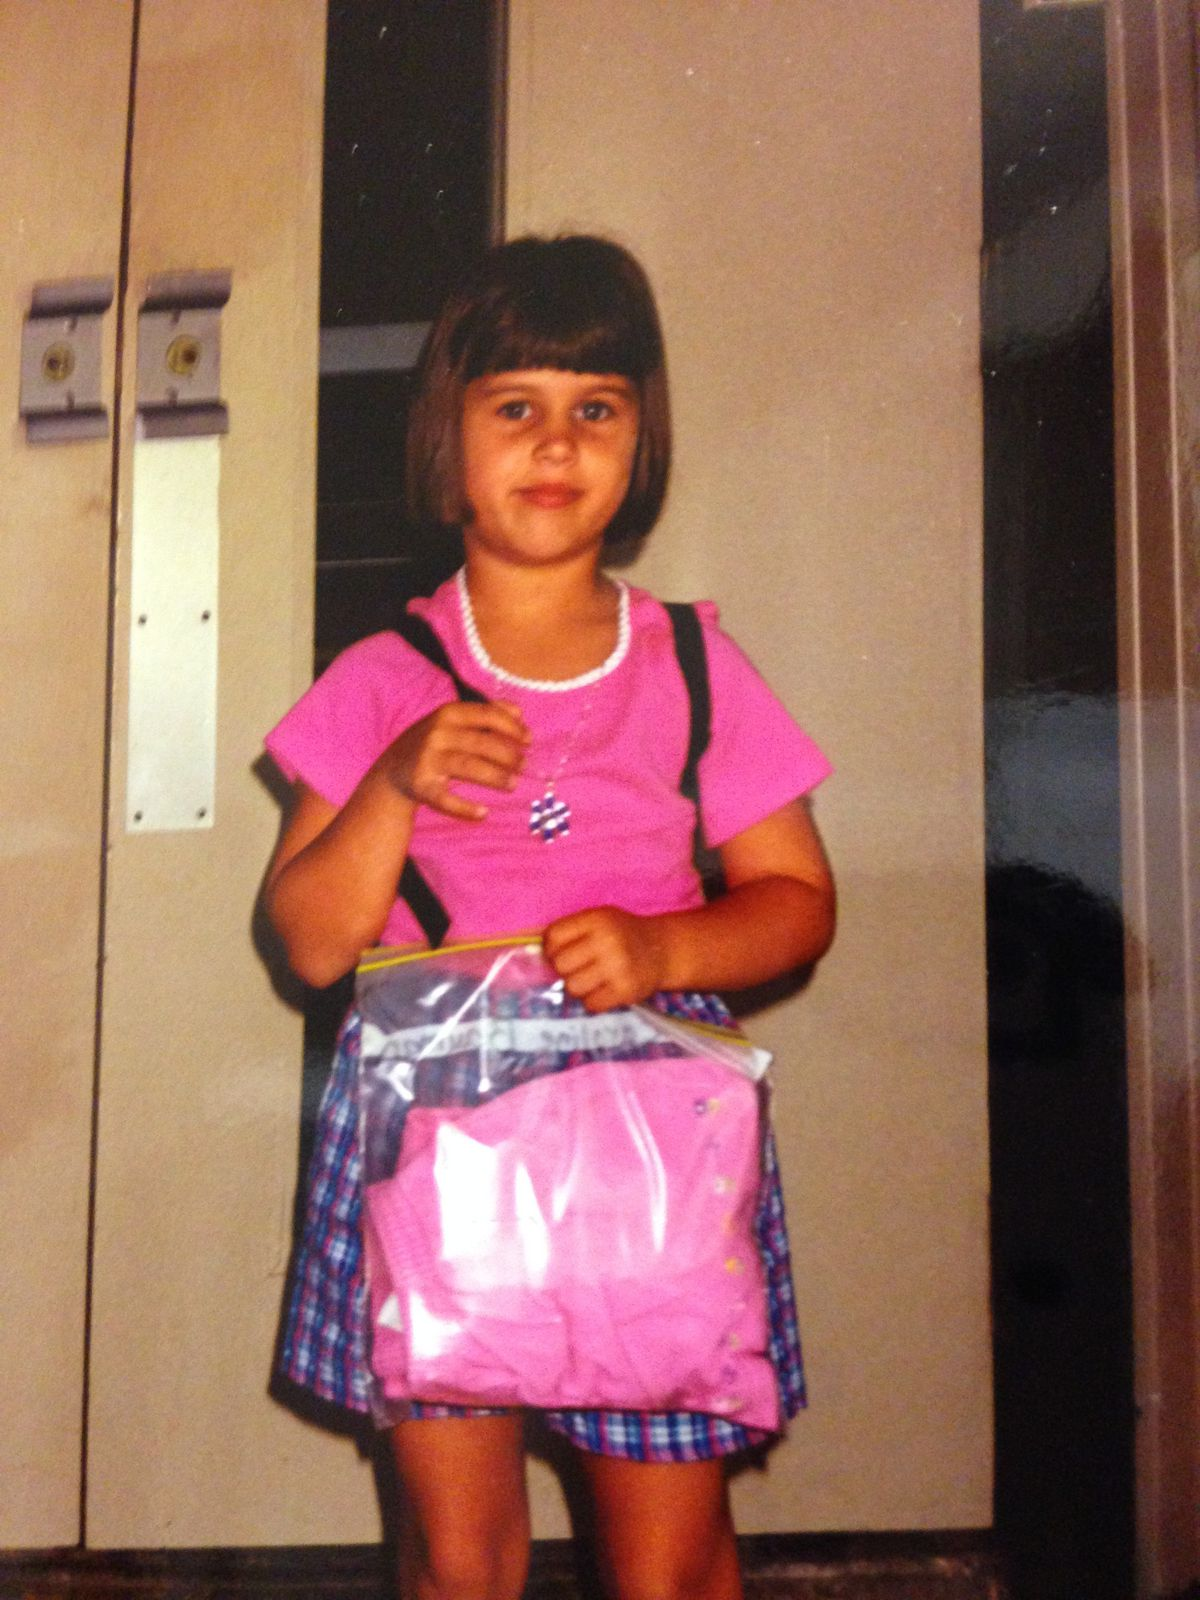 Chalkbeat community editor Caroline Bauman was more excited for her first day of kindergarten in Arkansas than she looks.